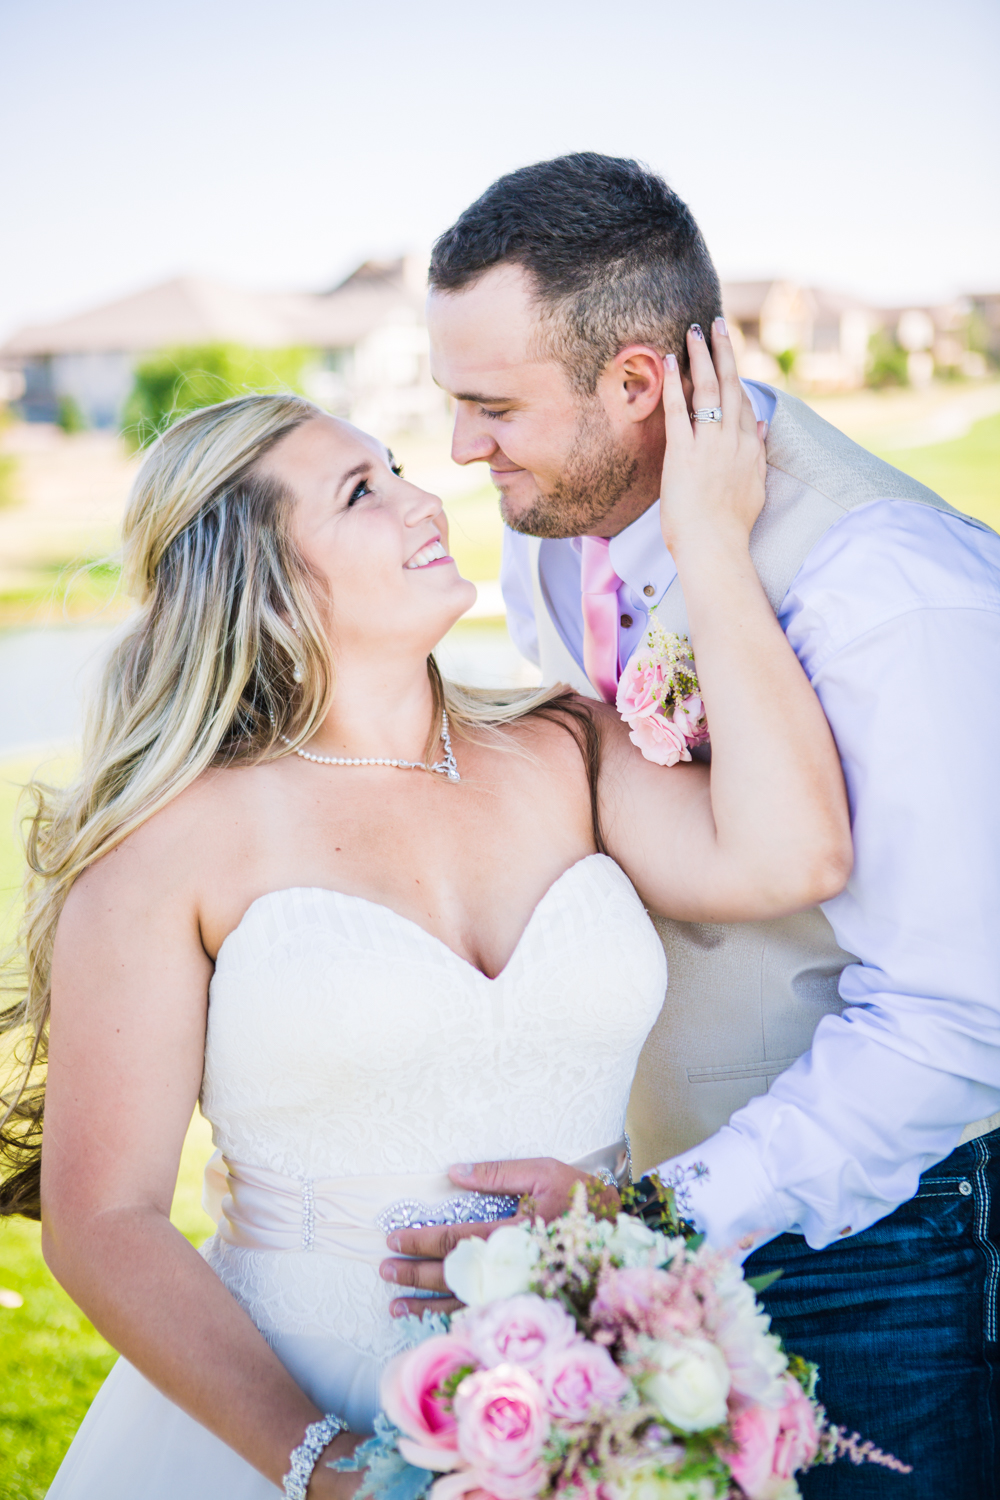 Wedding picture at the Big Red Barn at Highland Meadows Golf Course.Phototgraphed by Jared M. Gant of JMGant Photography.